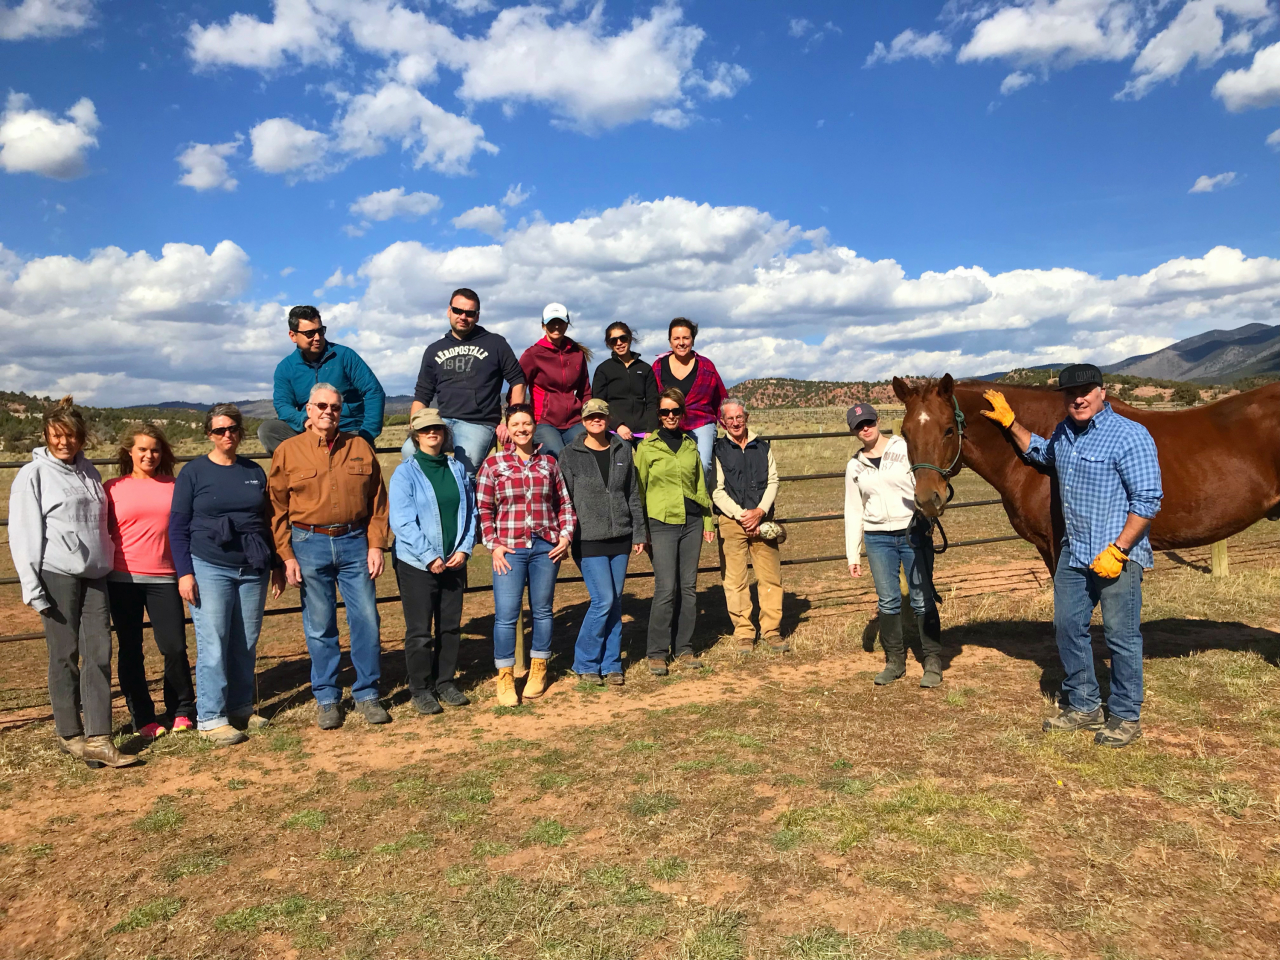 Pictured: LIV Sotheby's International Realty brokers and staff give back at Mountain Valley Horse Rescue.